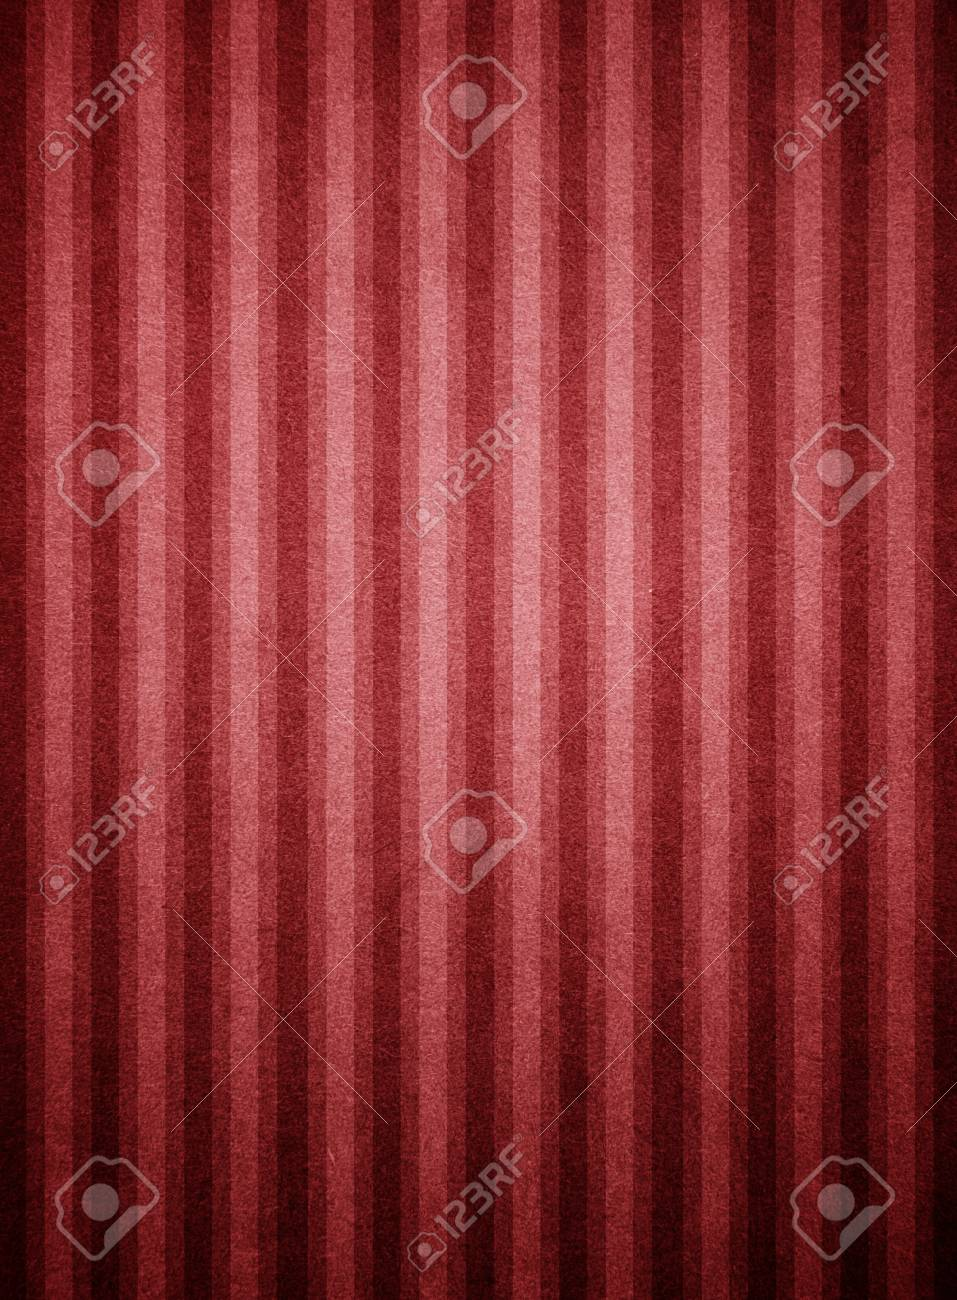 Striped red abstract background Stock Photo - 19335650